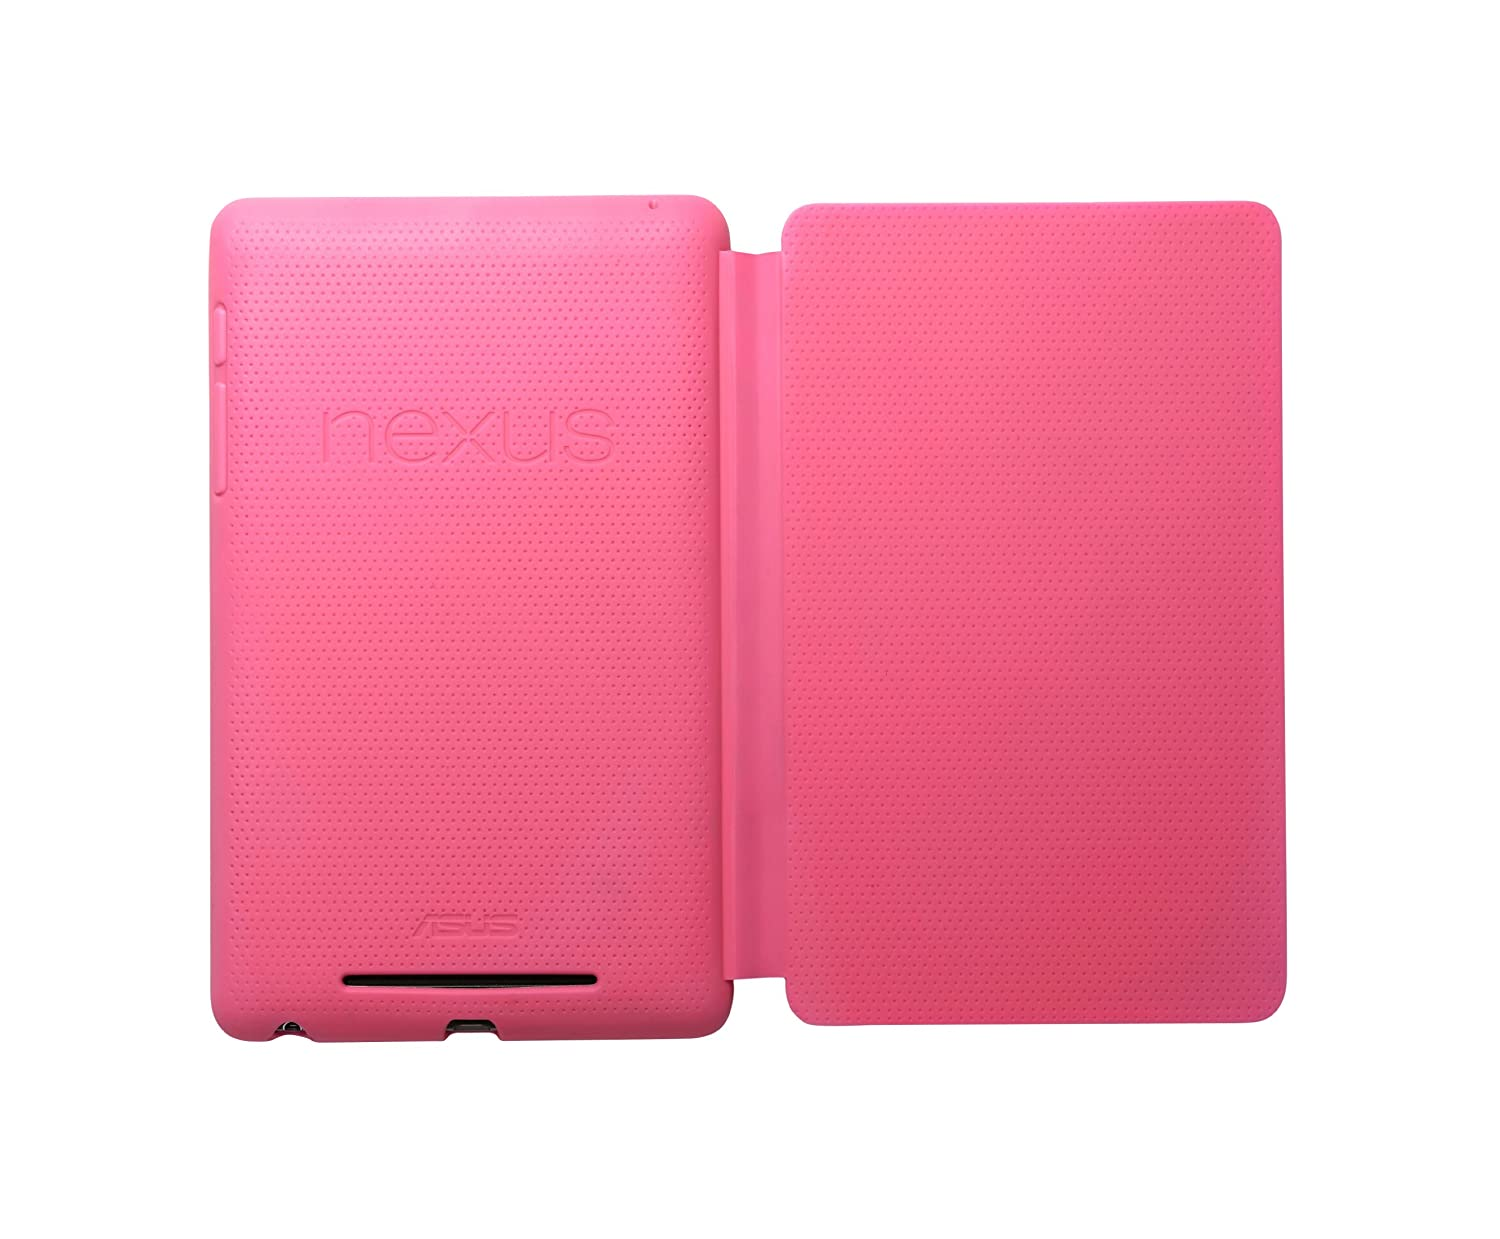 finest selection 91ed0 73f3d Amazon.com: ASUS Official Nexus 7 Travel Cover, Pink: Computers ...